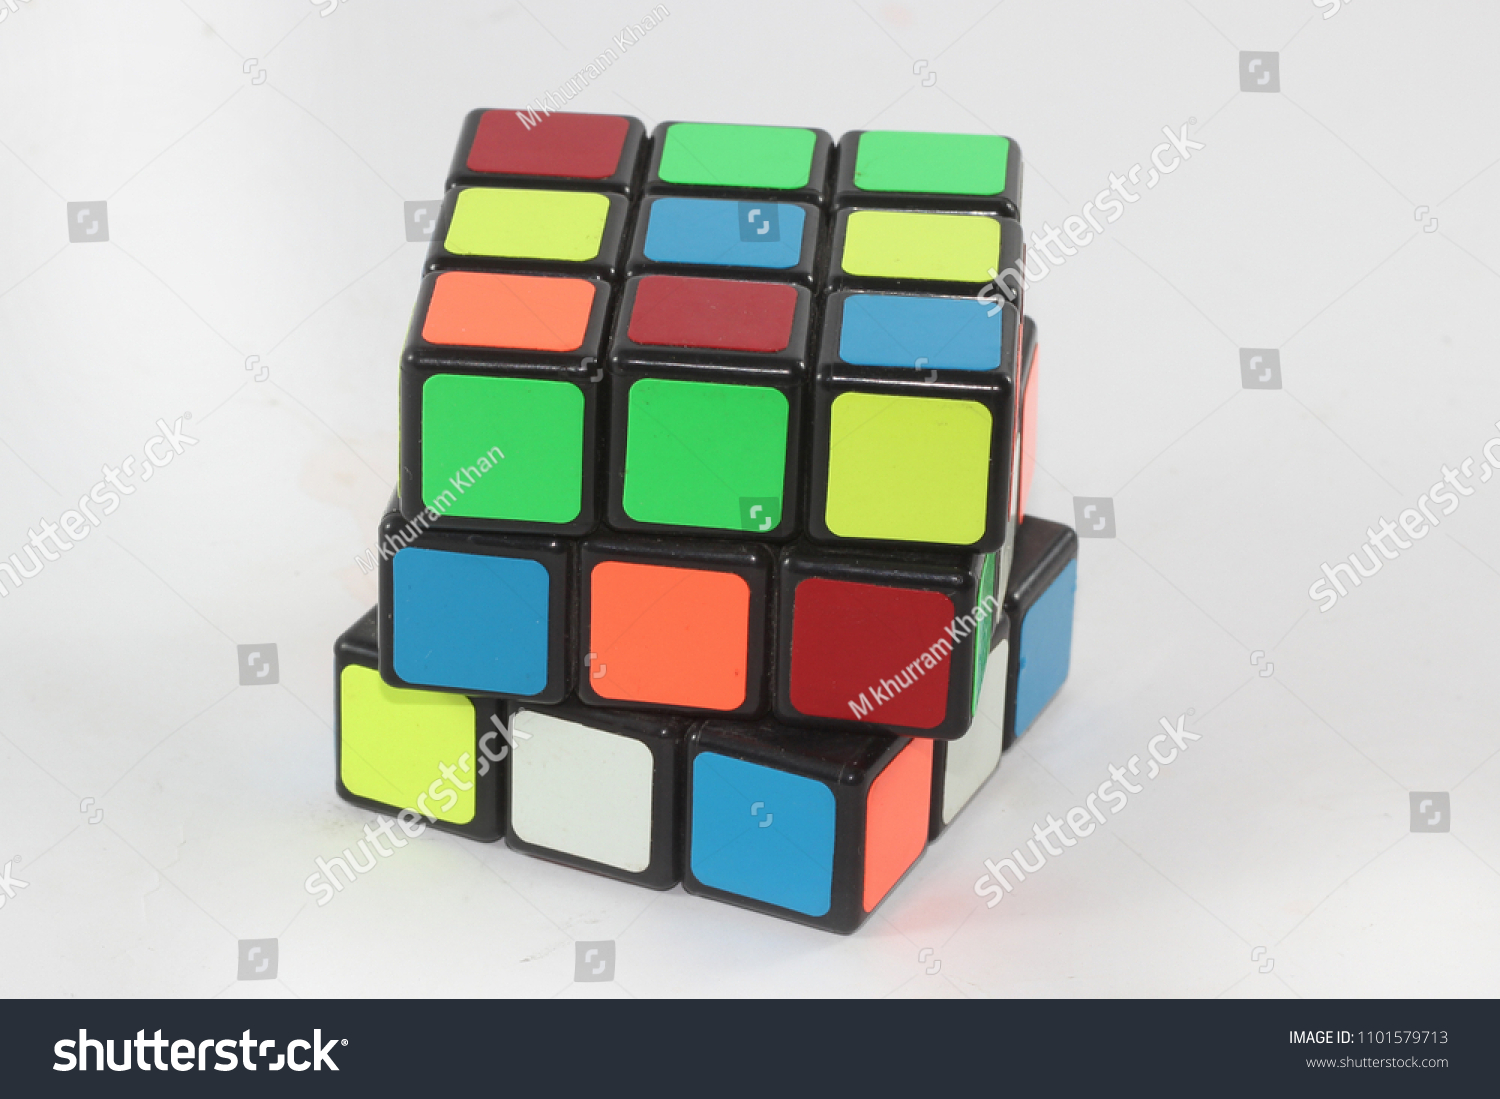 hight resolution of karachi pakistan 1 may 2018 solving the rubiks cube puzzle concept of solution